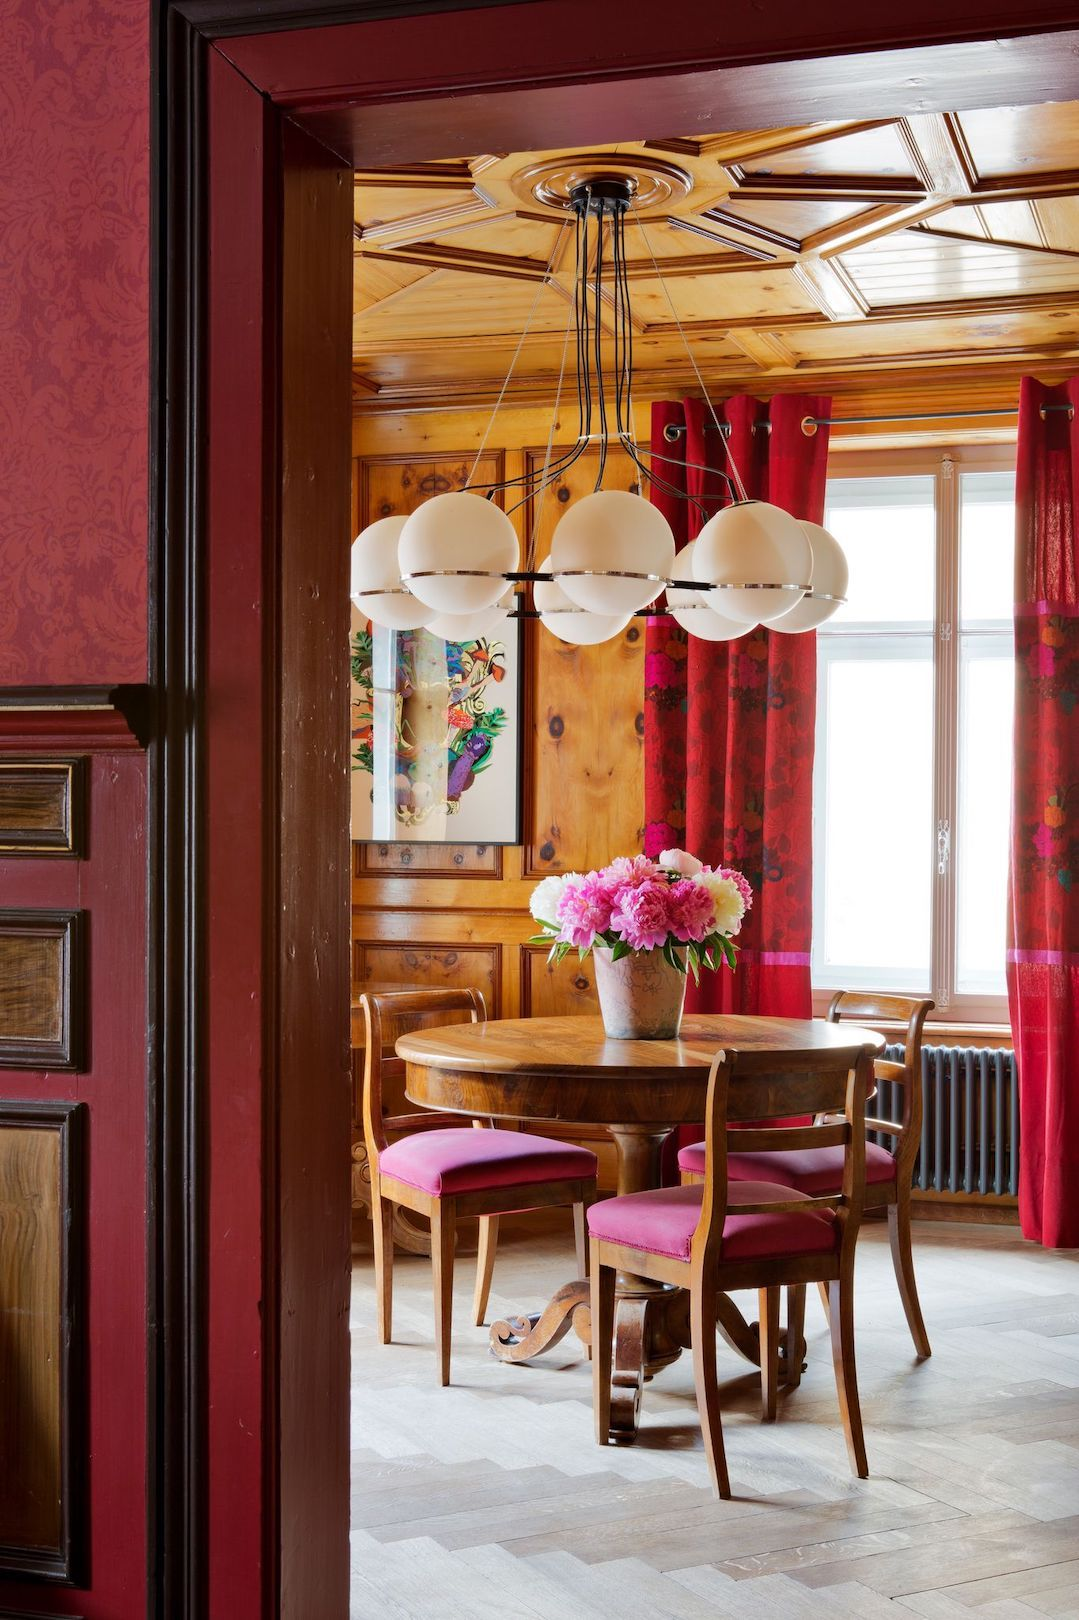 Villa Flor Engadin  - boutique townhouse interiors